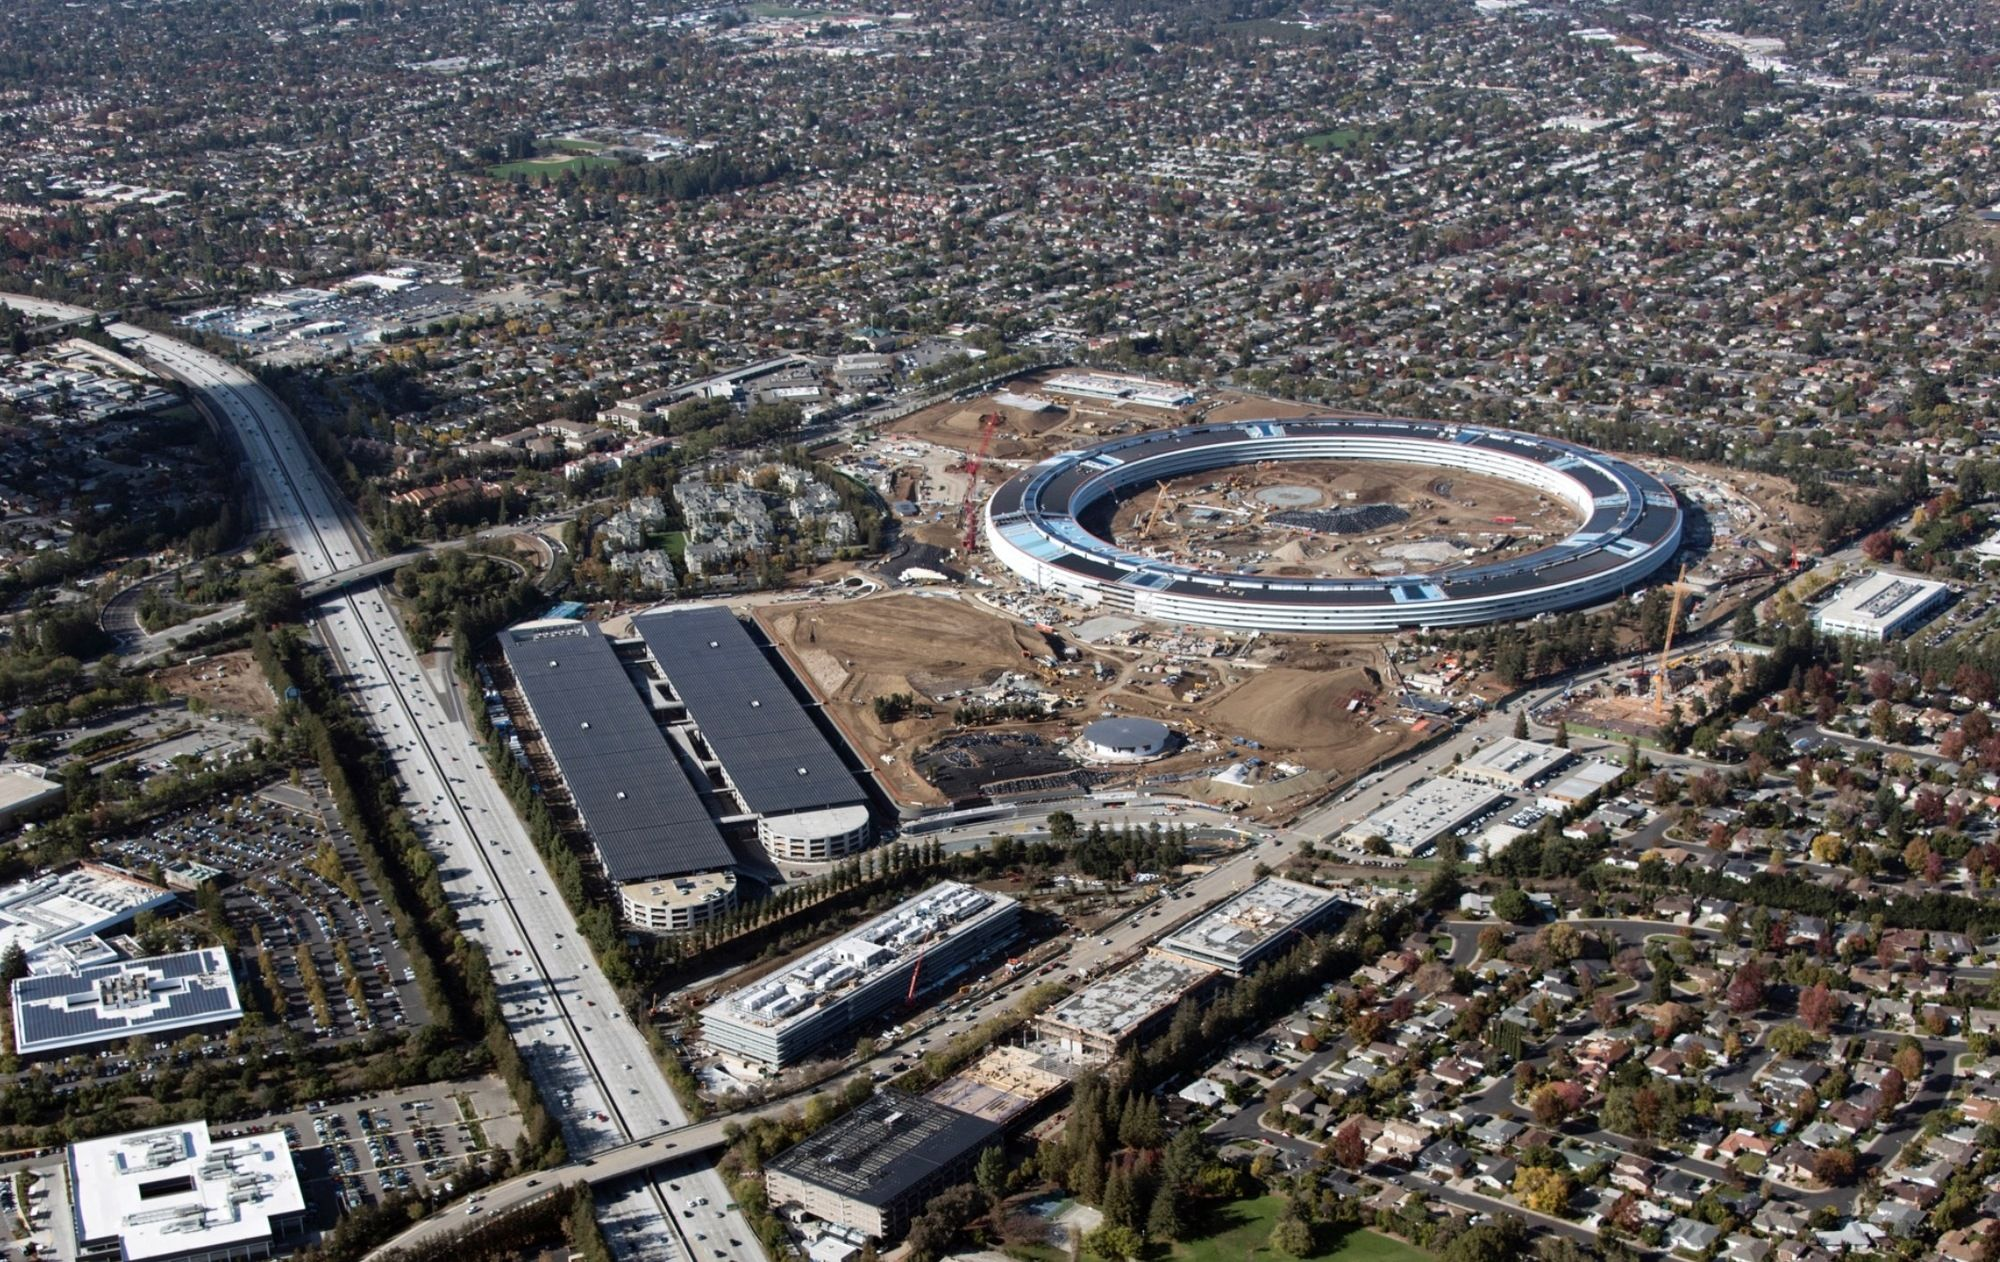 Foster s Apple Campus unanimously approved by Cupertino City Council architecture ☠k☠Modern Architecture mercial Pinterest